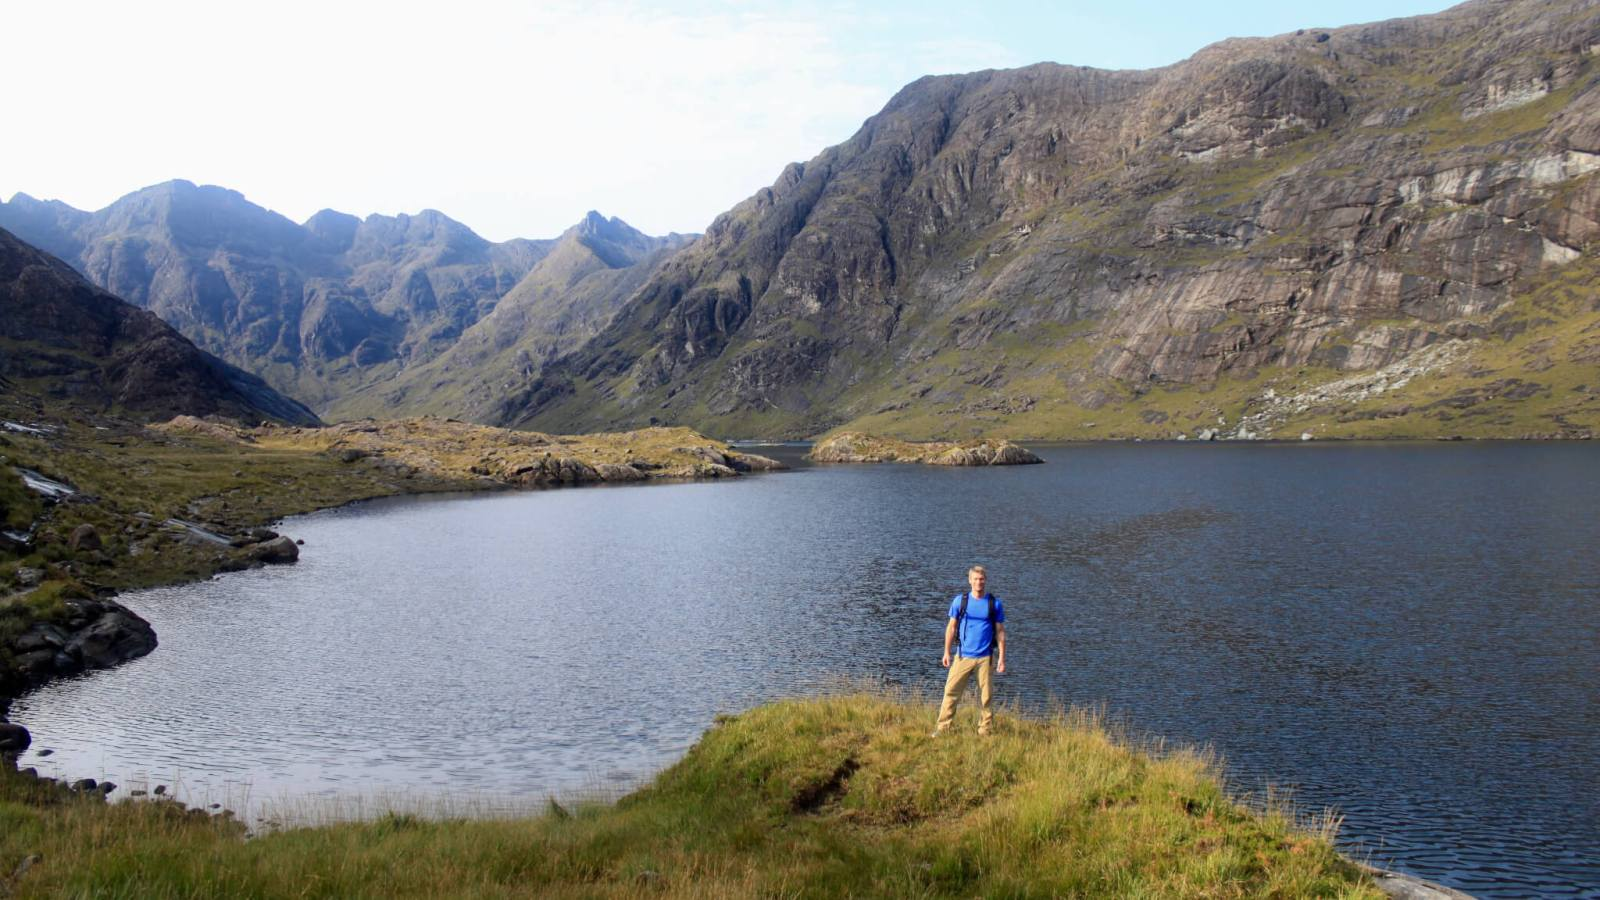 M standing in front of Loch Coruisk with mountains beyond